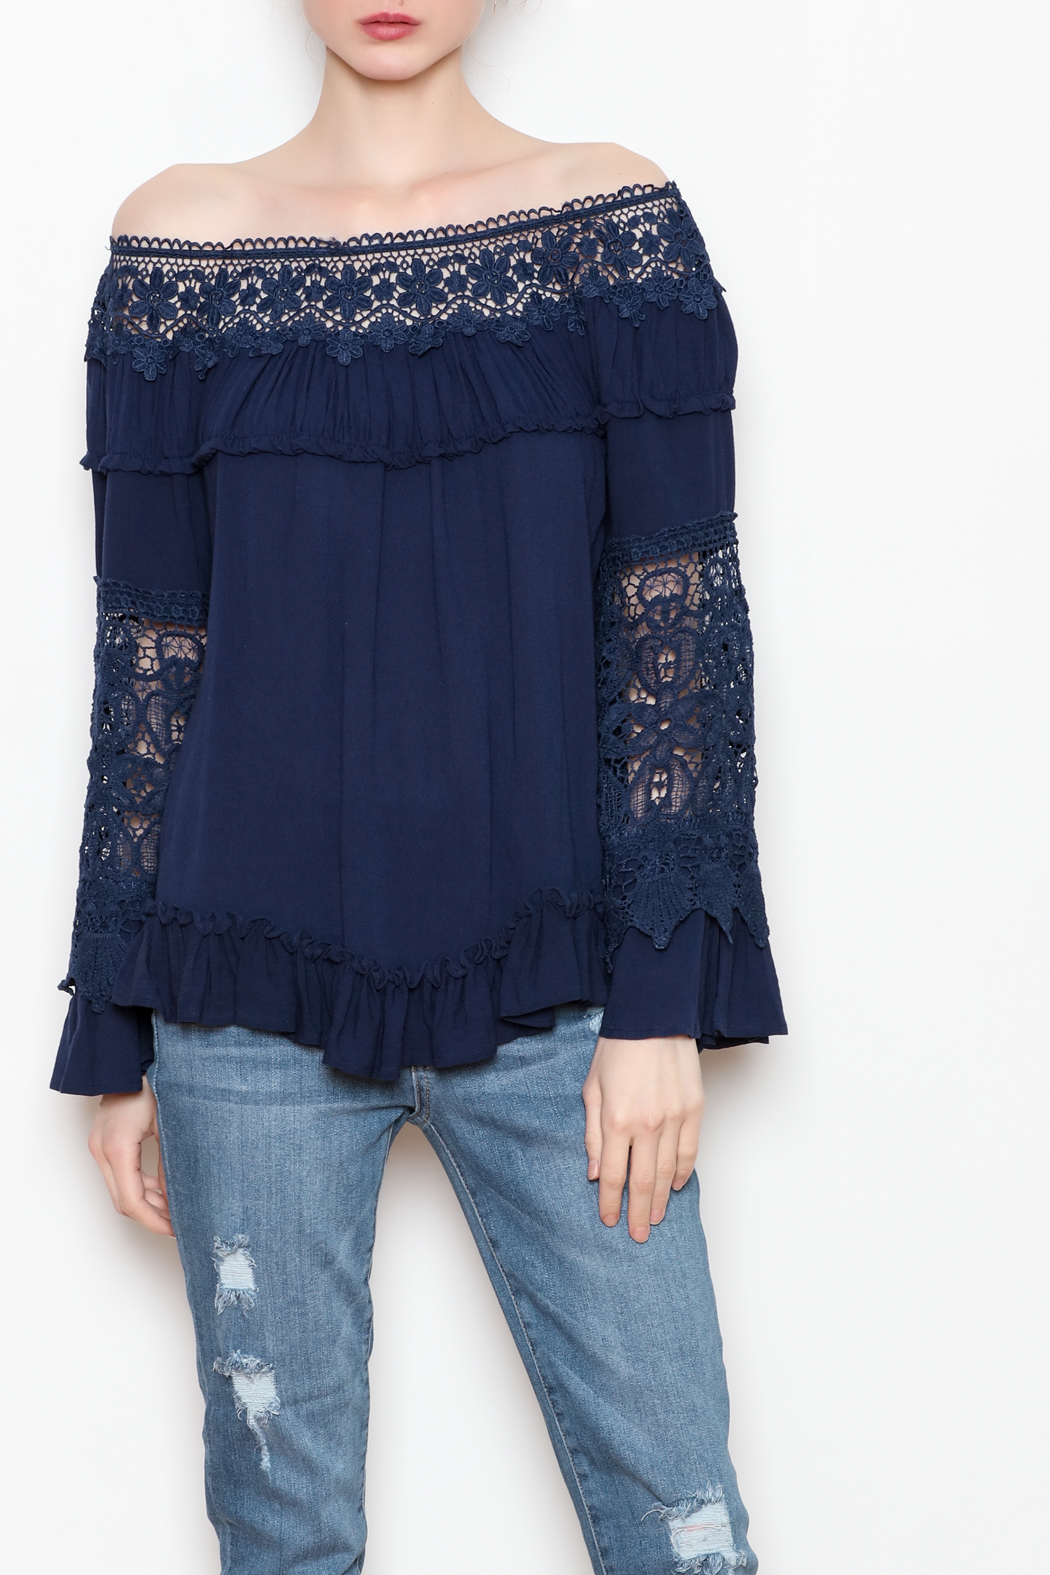 Allison Collection Lace OTS Top - Front Cropped Image